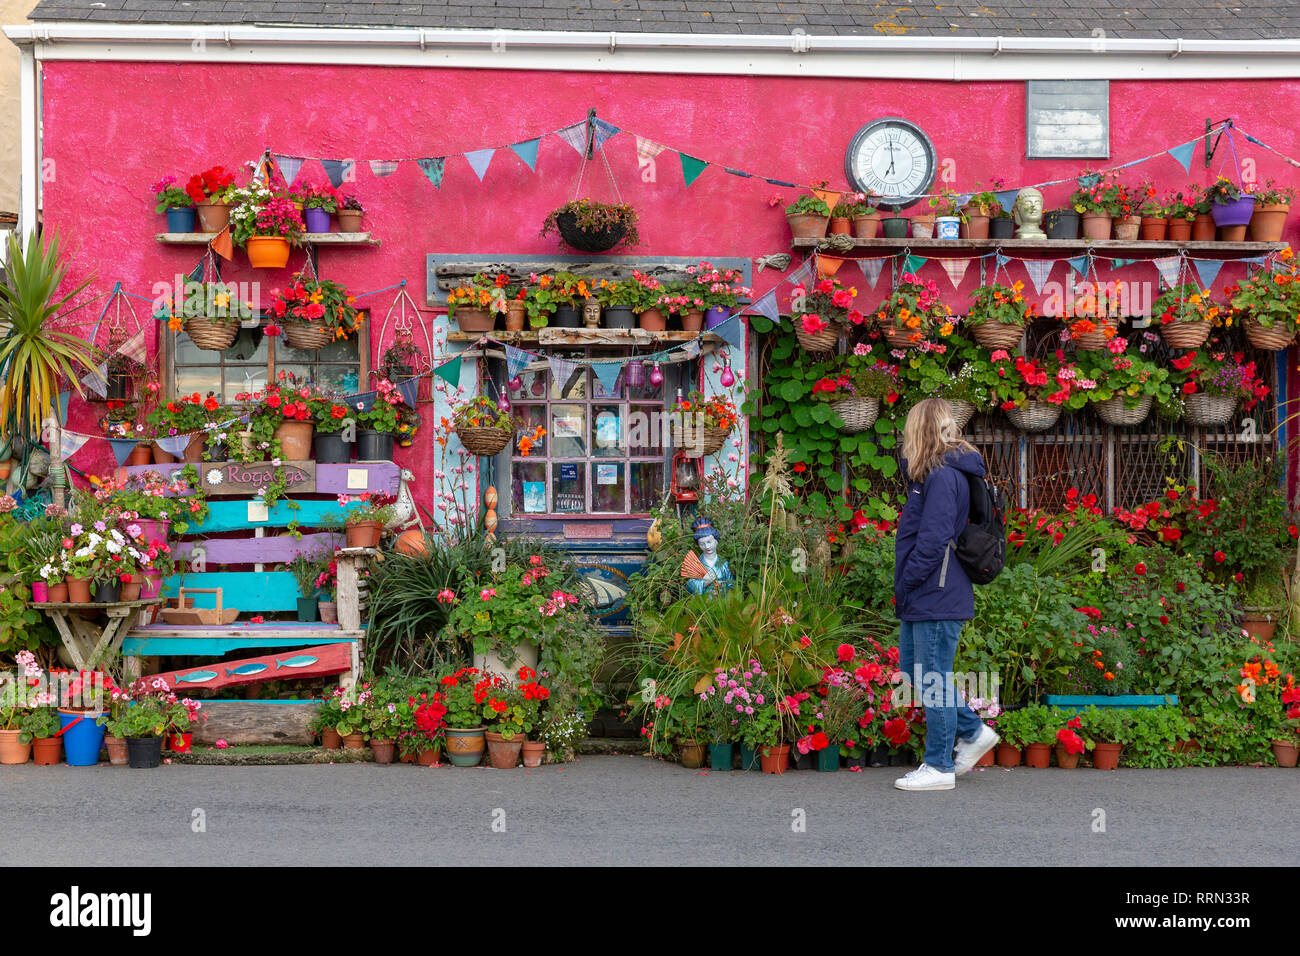 Tourist admiring the highly colourful decoration and plants adorning a house exterior  in Lizard, Cornwall, UK - Stock Image